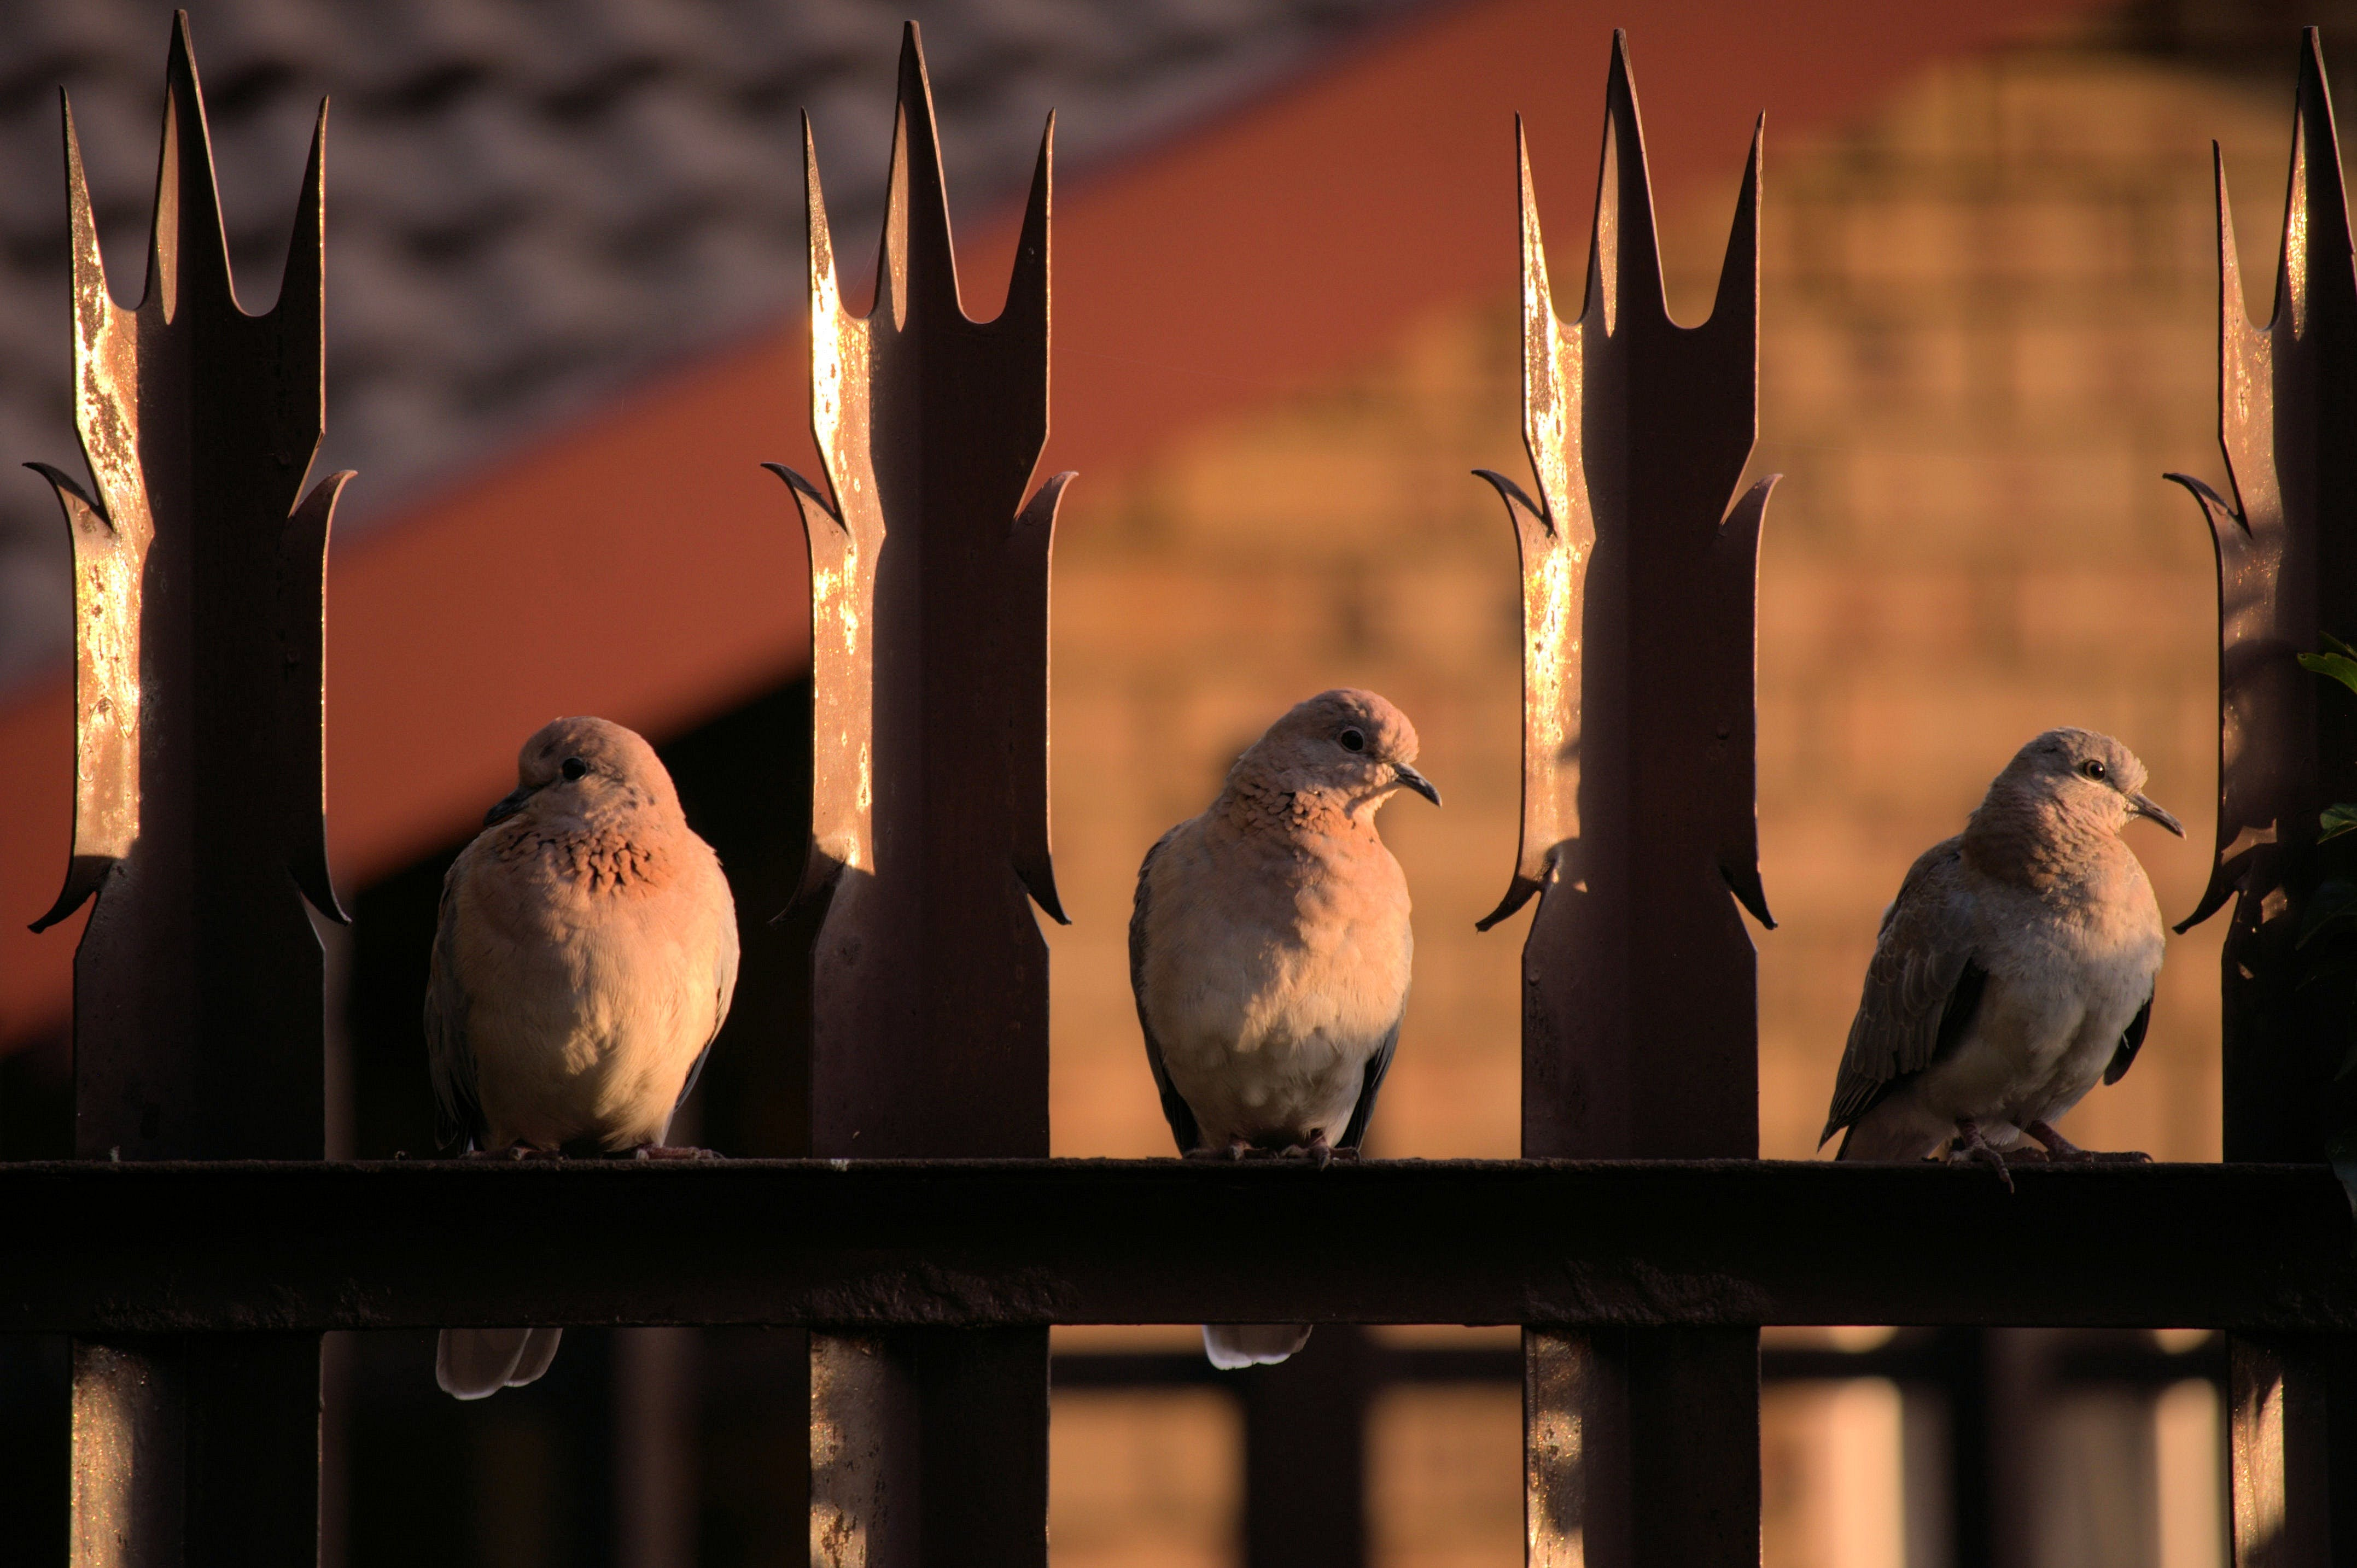 Free stock photo of birds, doves, pigeons, feathers